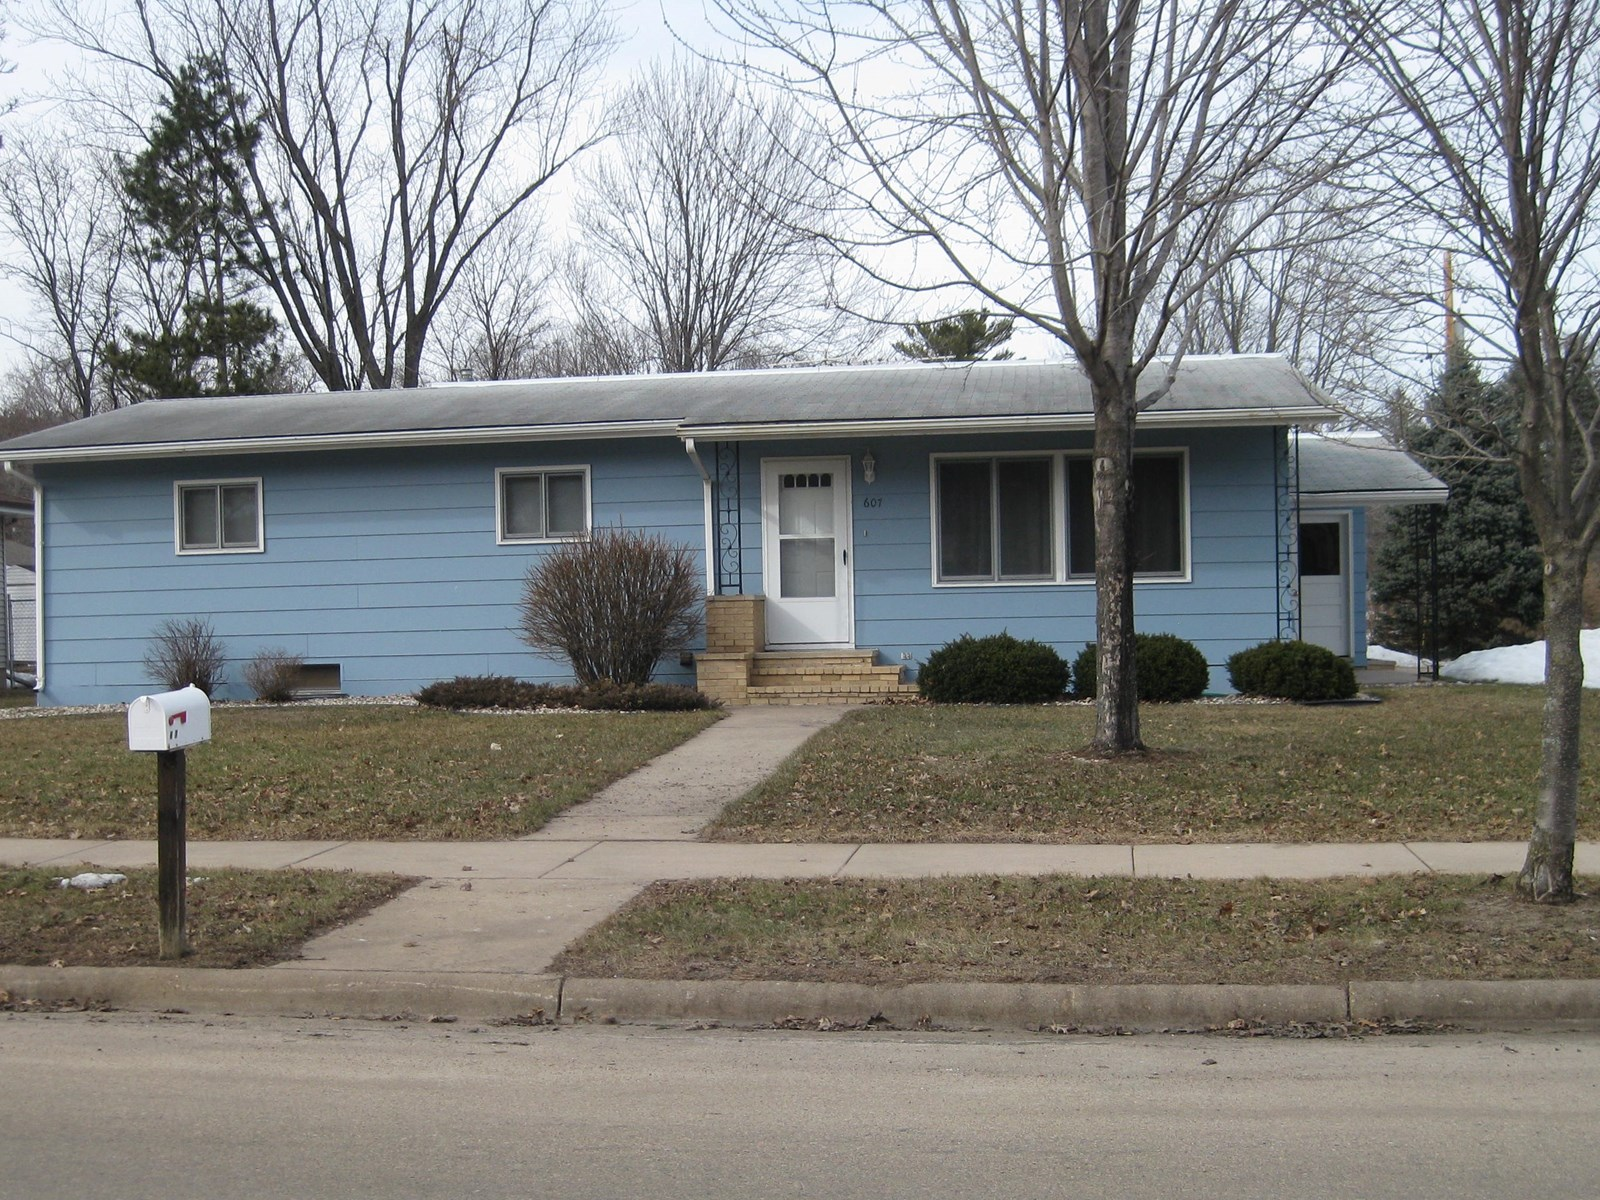 Home for Sale in Waupaca, WI Near Hospital & Easy Hwy Access